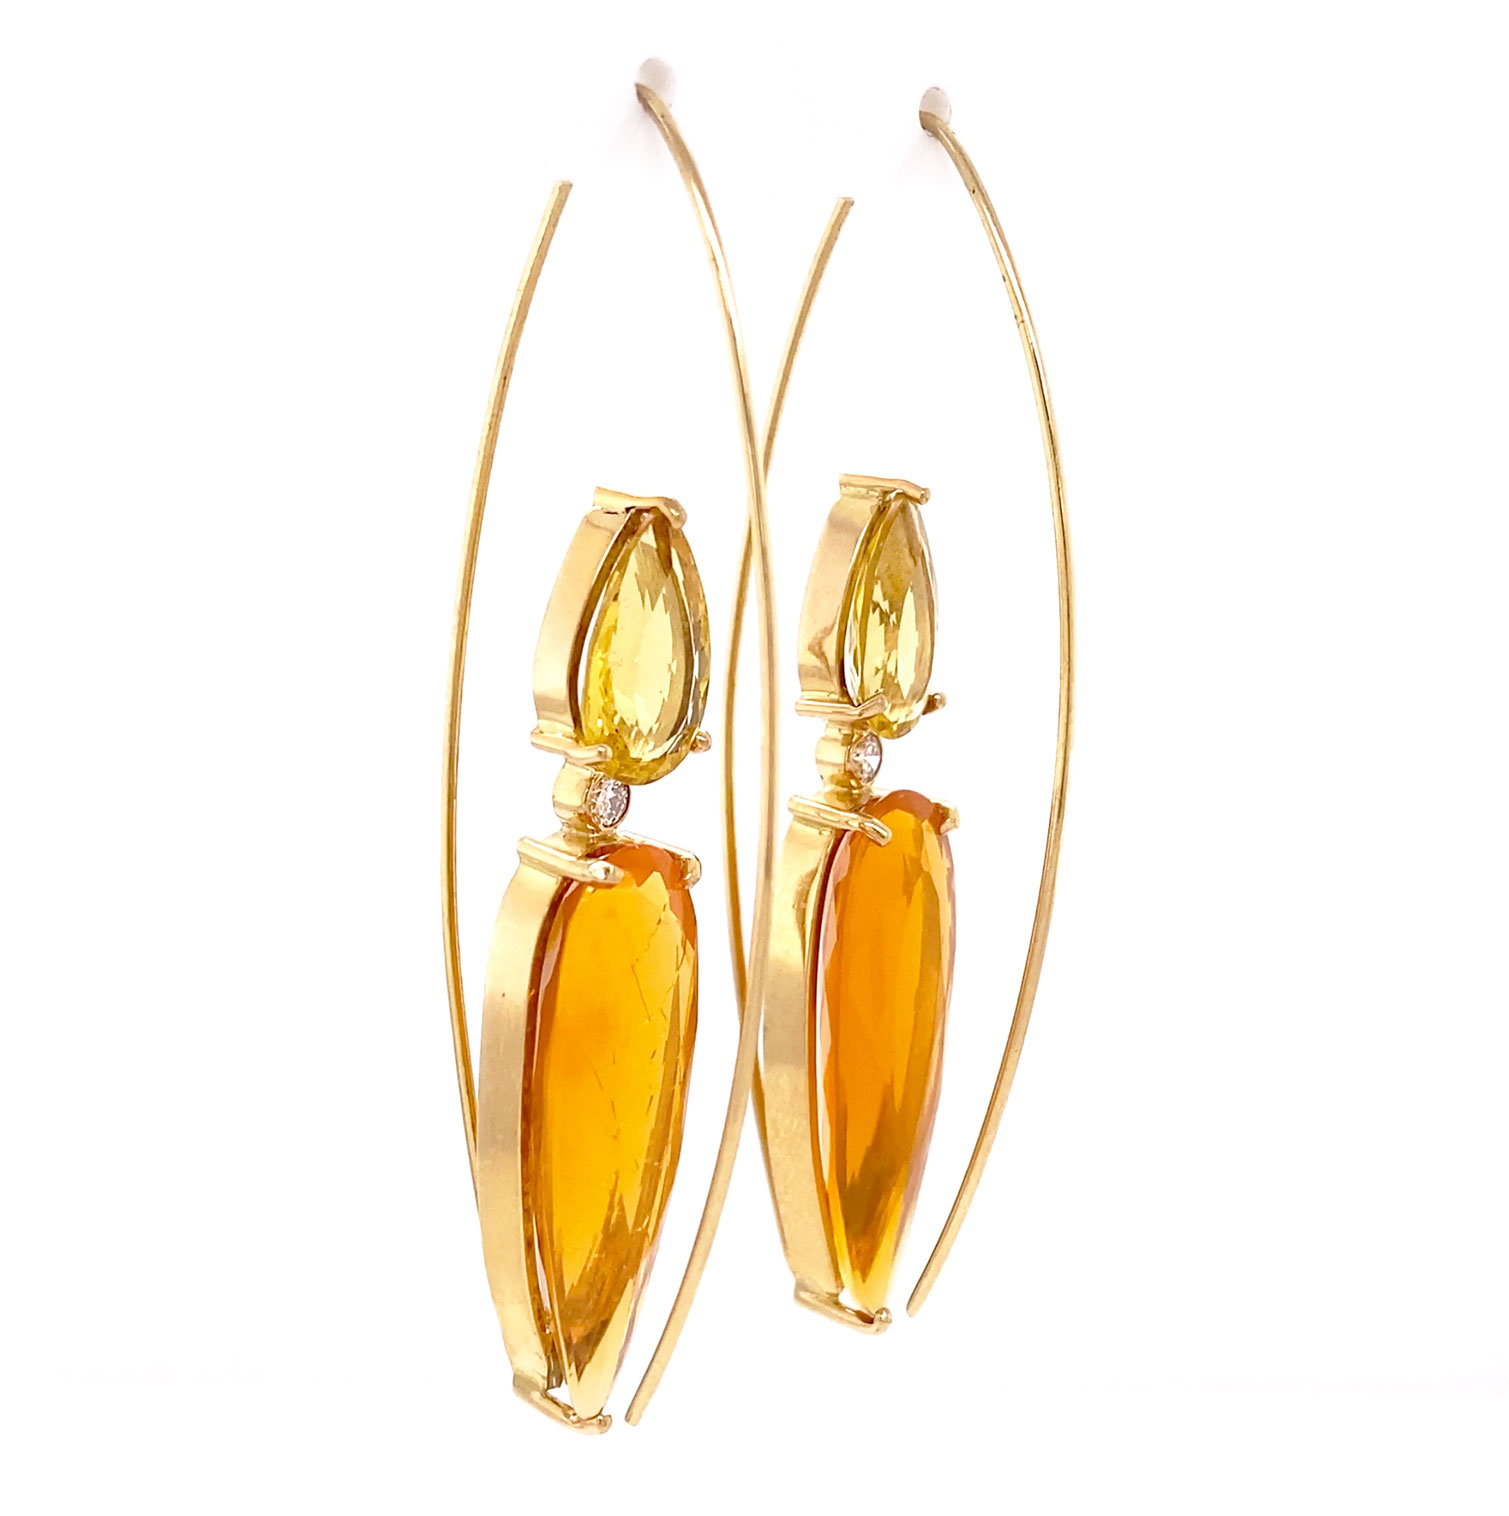 An amazing pair of 14k yellow gold, reverse-wire earrings set with Brazilian Orange Fire Opals on the bottom and paired with Golden Emerald (Beryl) pearshapes on the top. Accented with Diamonds in between the stunning gems. One-of-a-kind from Mark Loren!